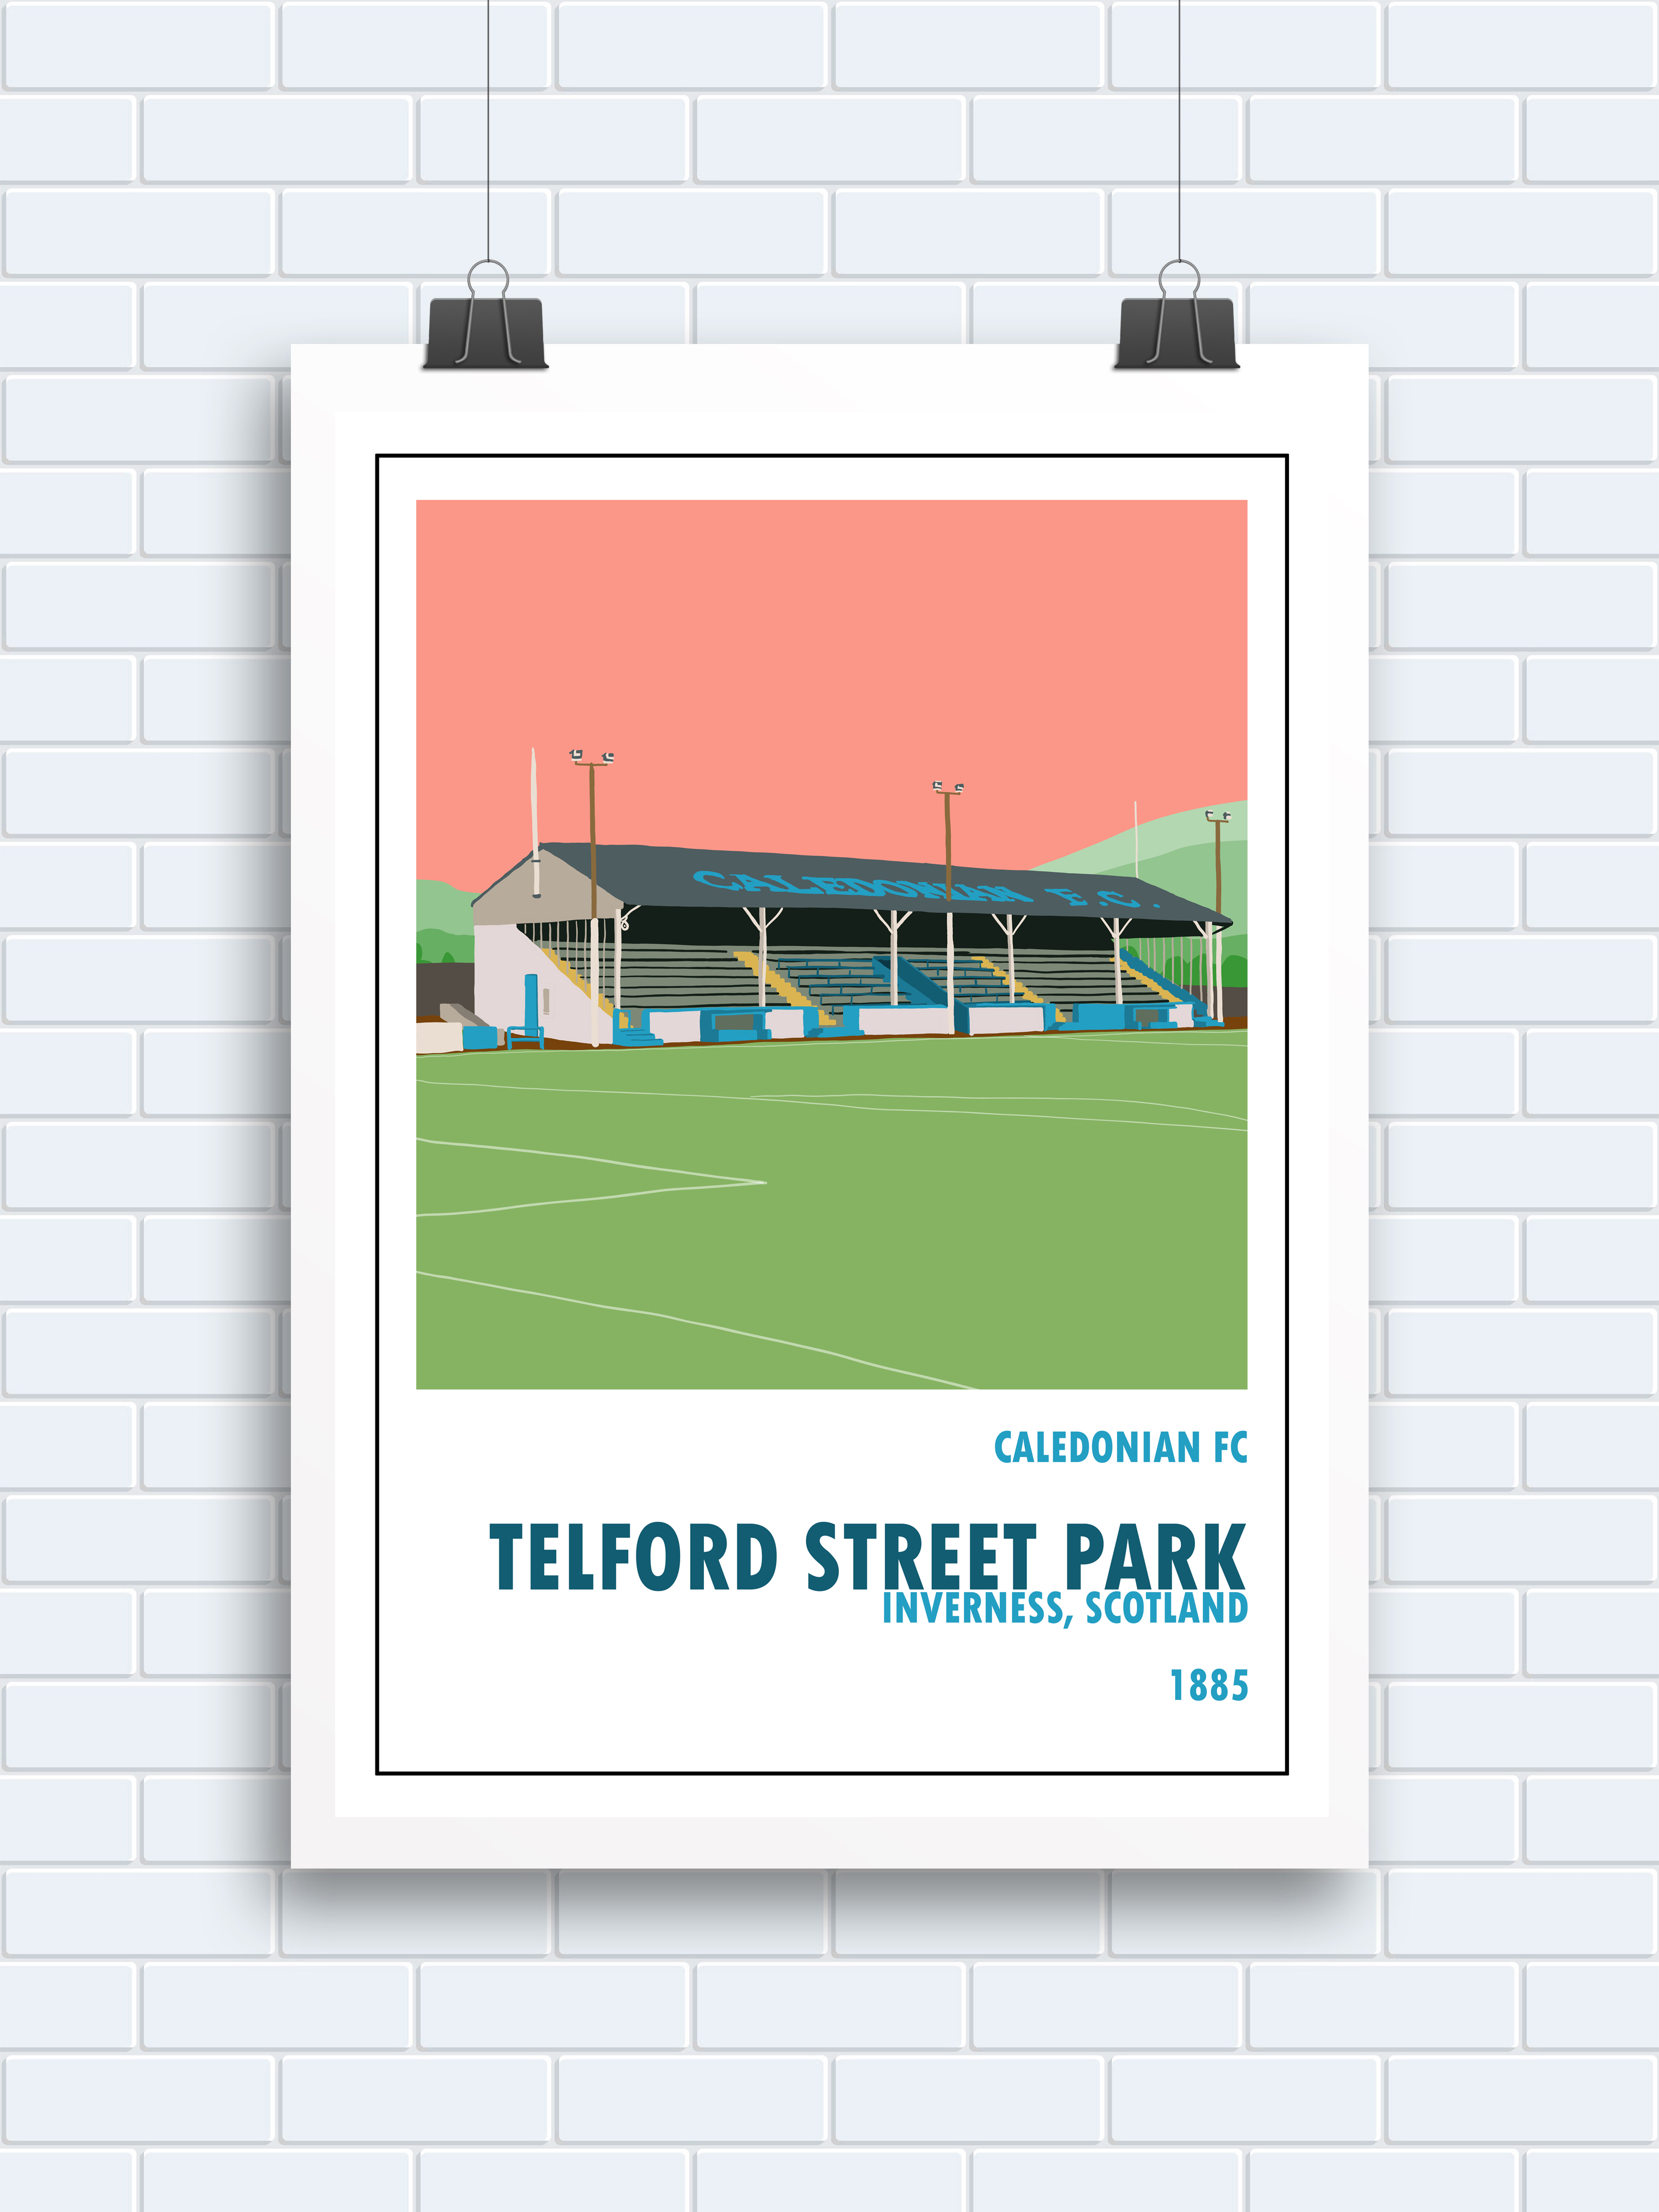 Telford Street Park, Inverness